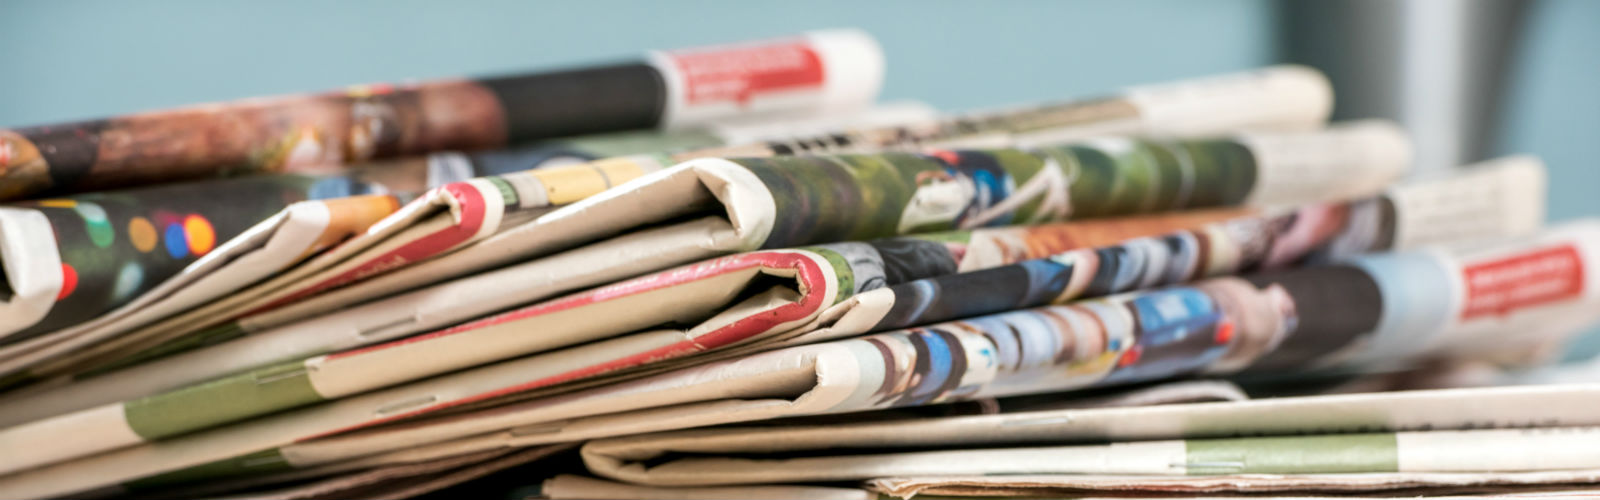 Image: newspaper stack